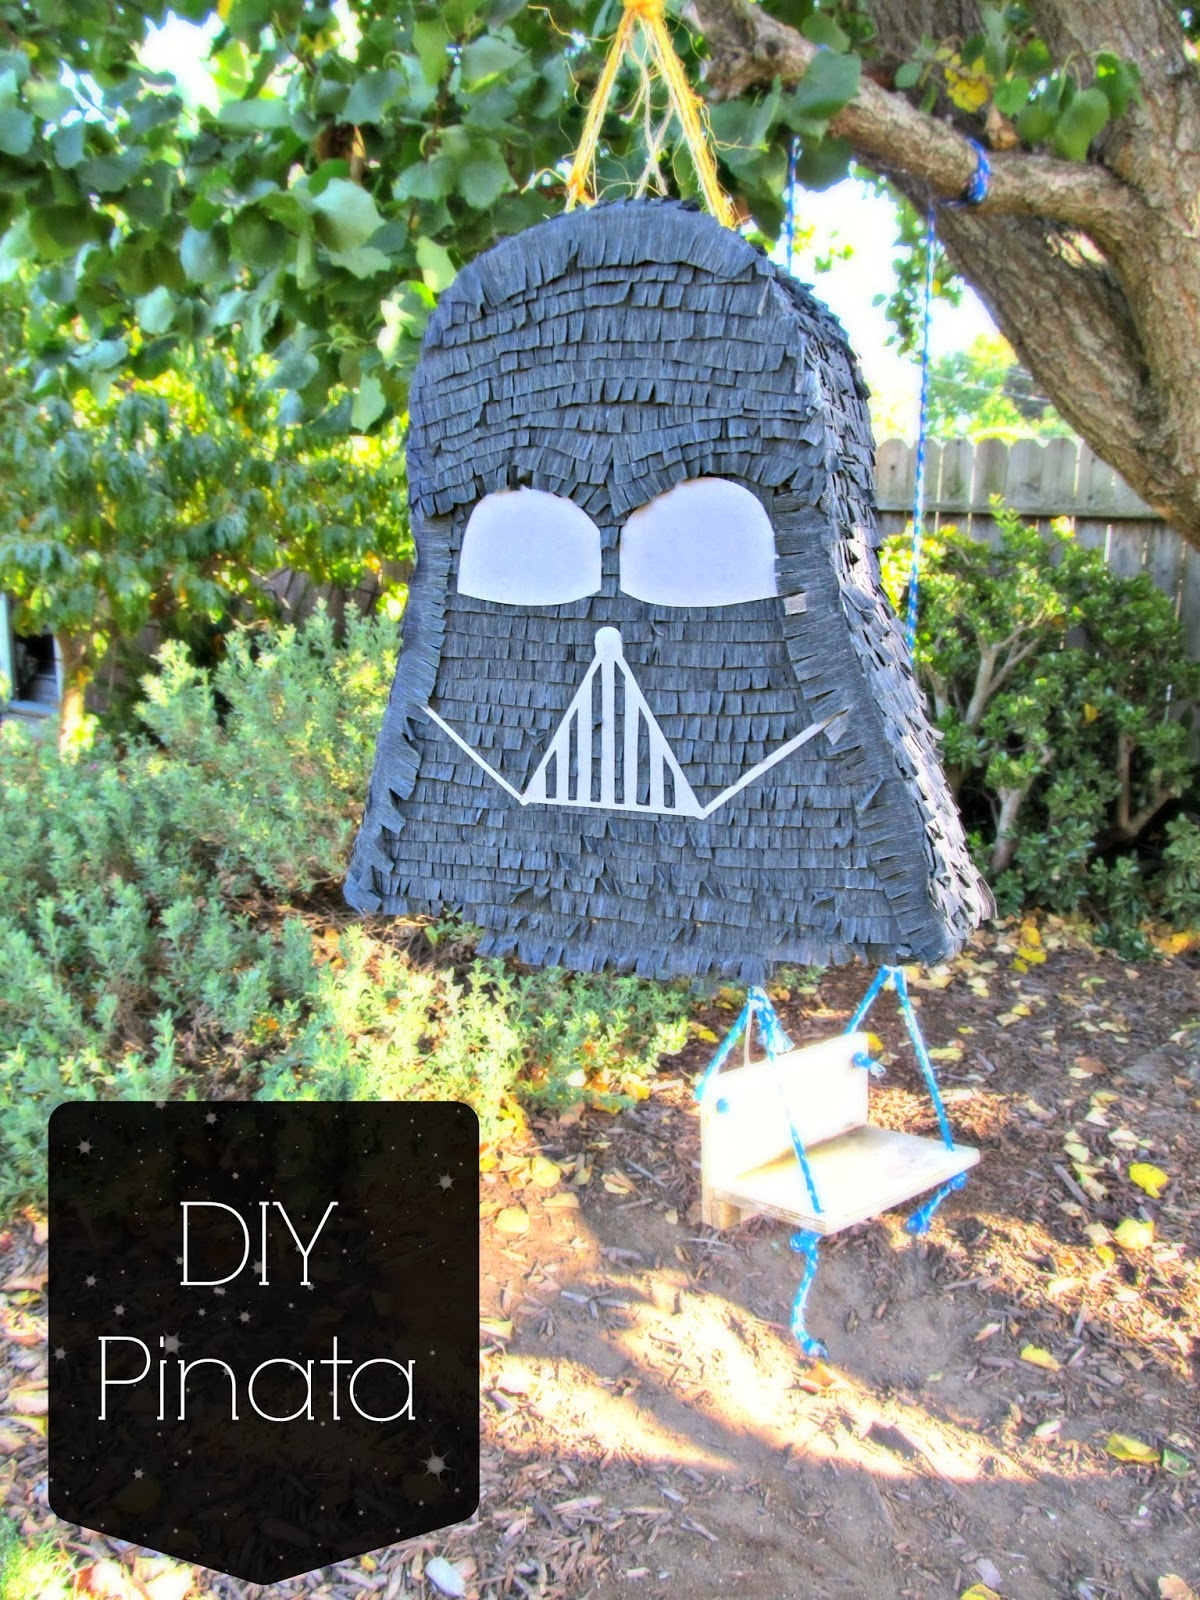 1000 images about star wars party on pinterest star wars birthday party banners and star wars. Black Bedroom Furniture Sets. Home Design Ideas